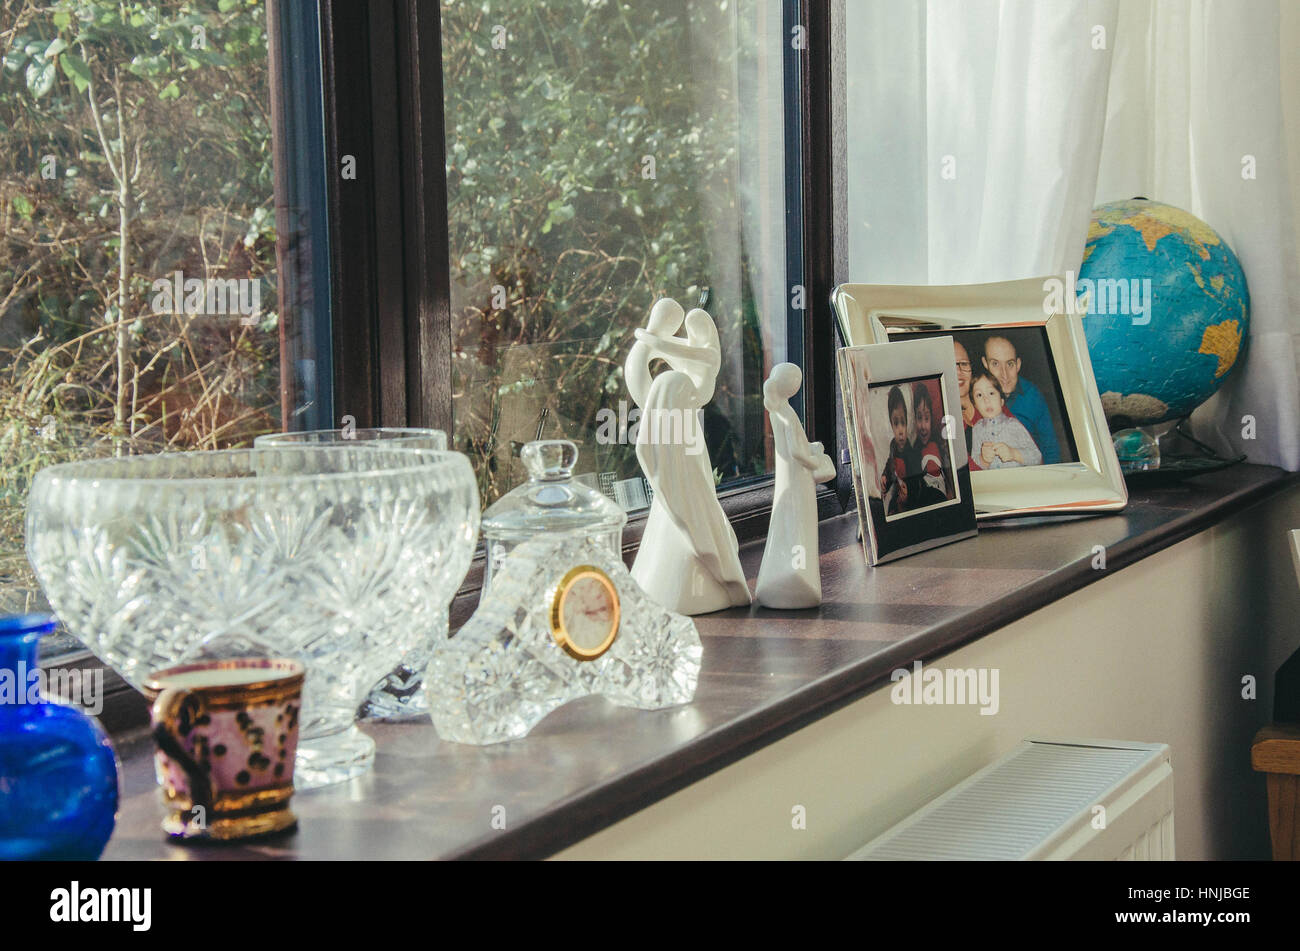 Ornaments and family photos on a window ledge. - Stock Image